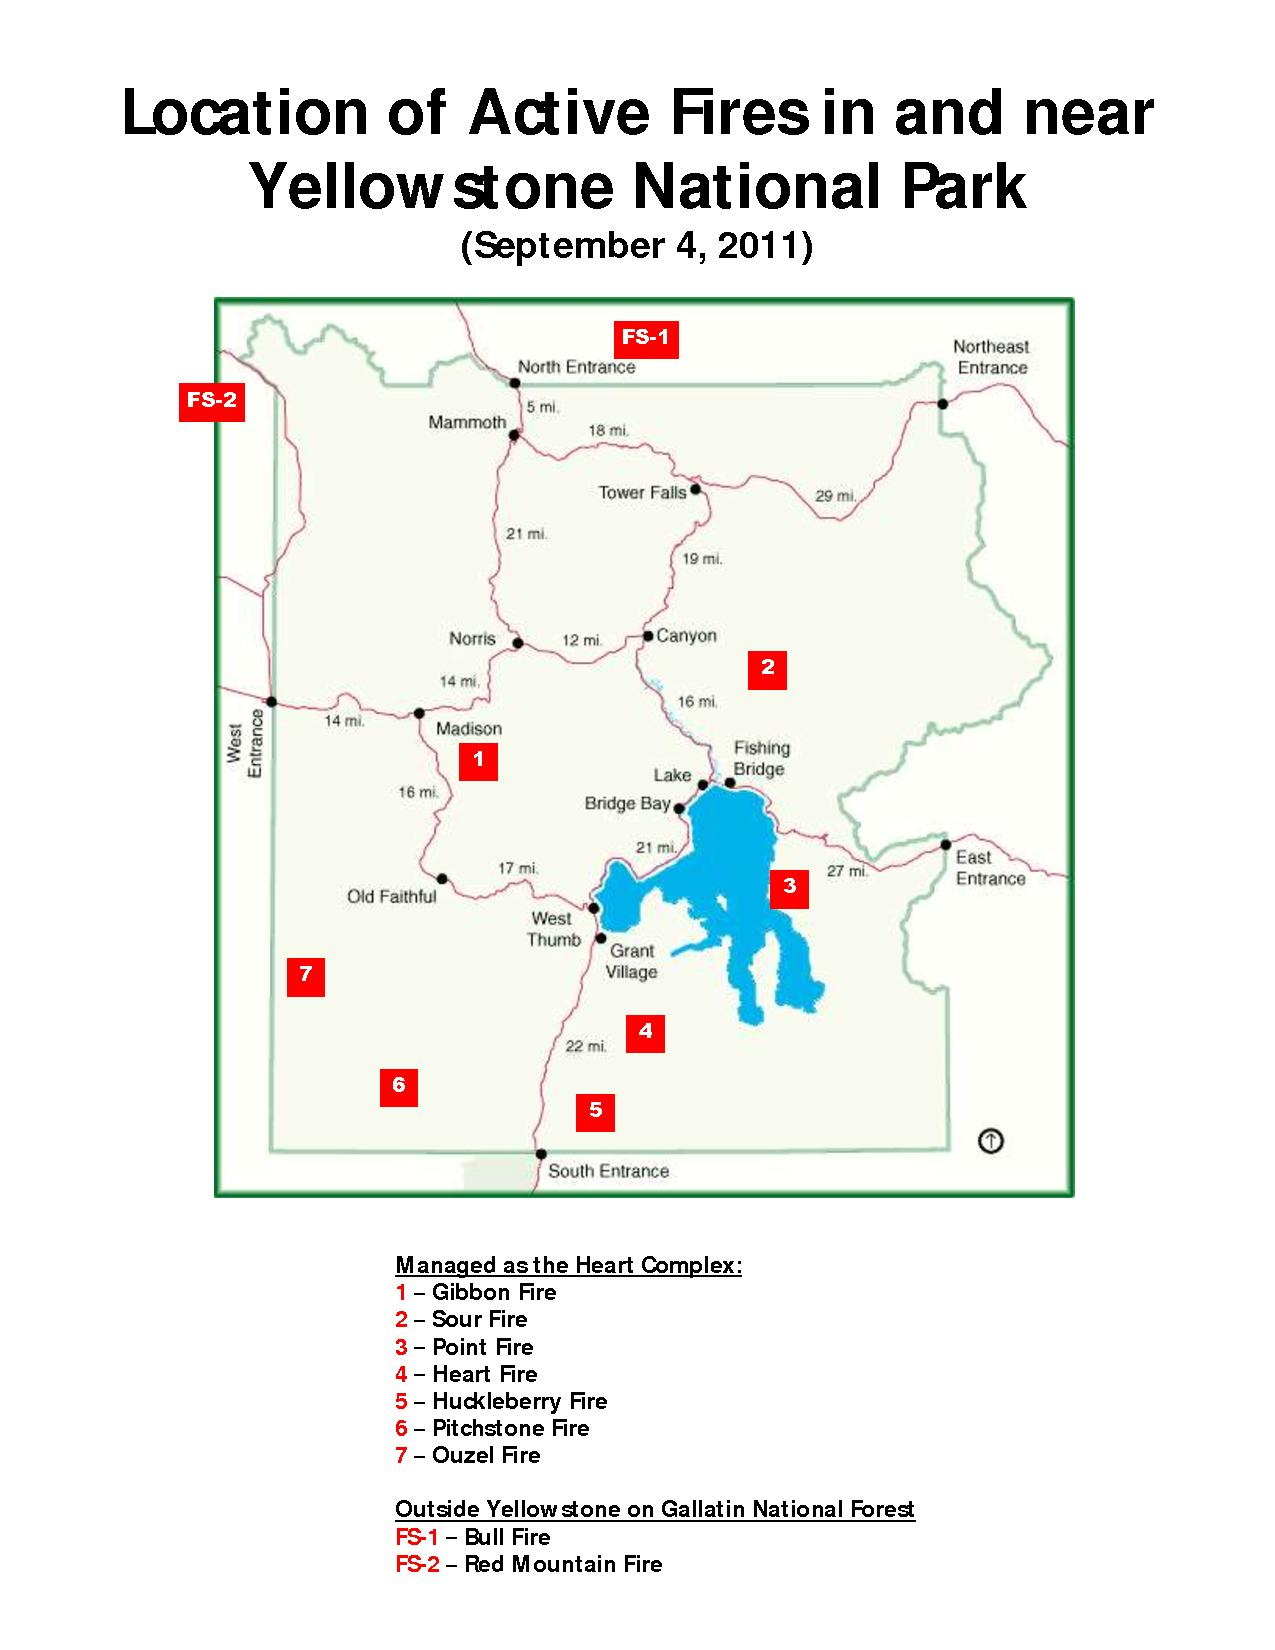 Map of Yellowstone National Park showing fires actively burning in and near the park